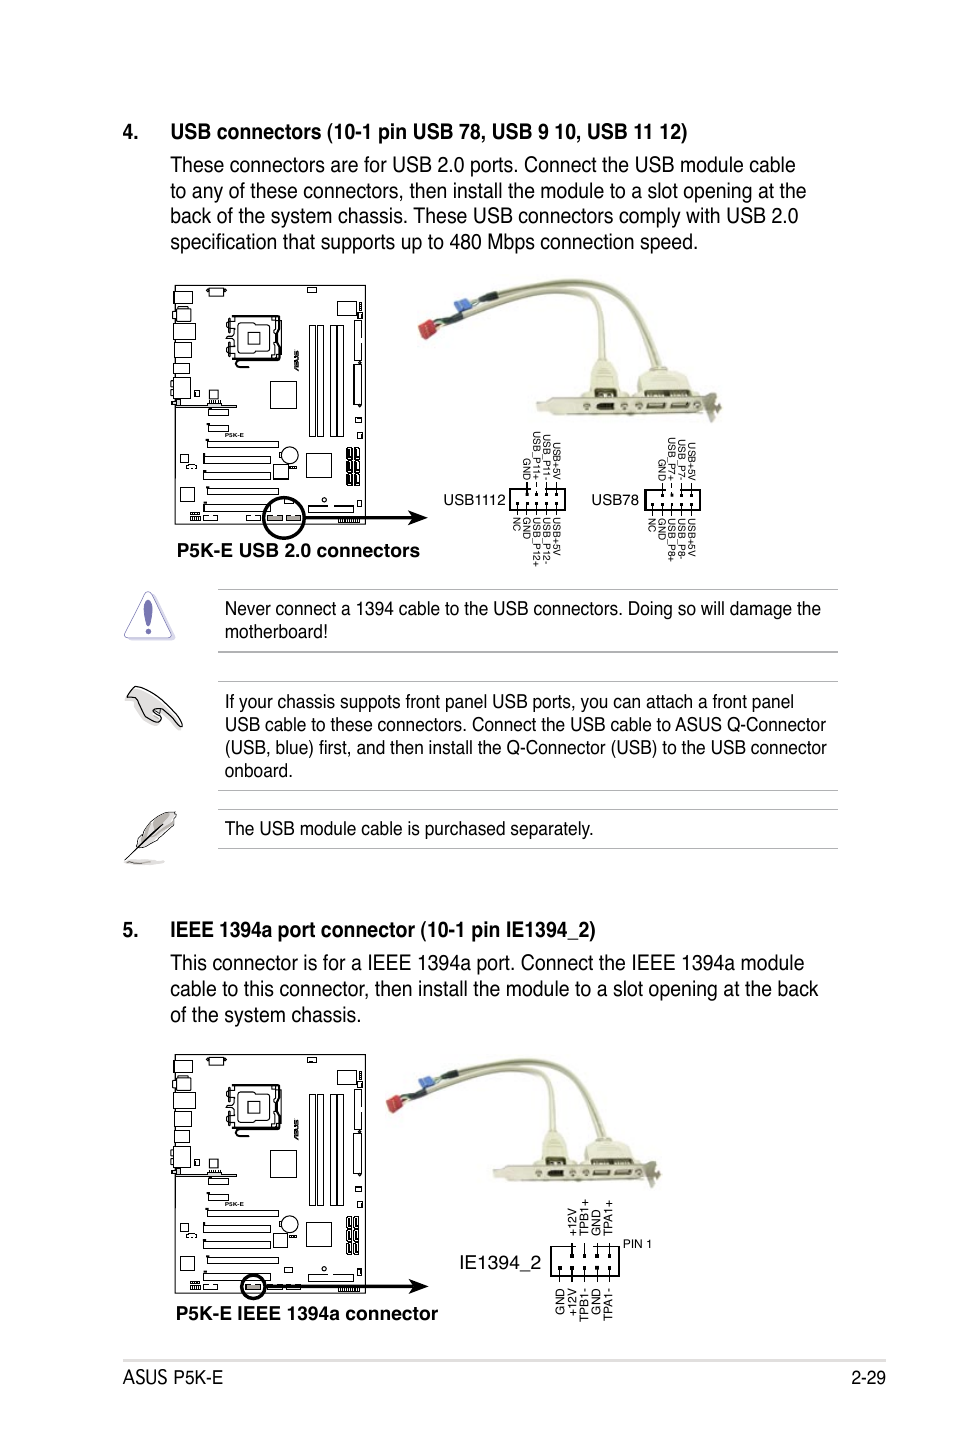 Asus P5k E 2 29 Usb 20 Connectors Wifi Ap User Front Panel Wiring Diagram Manual Page 55 172